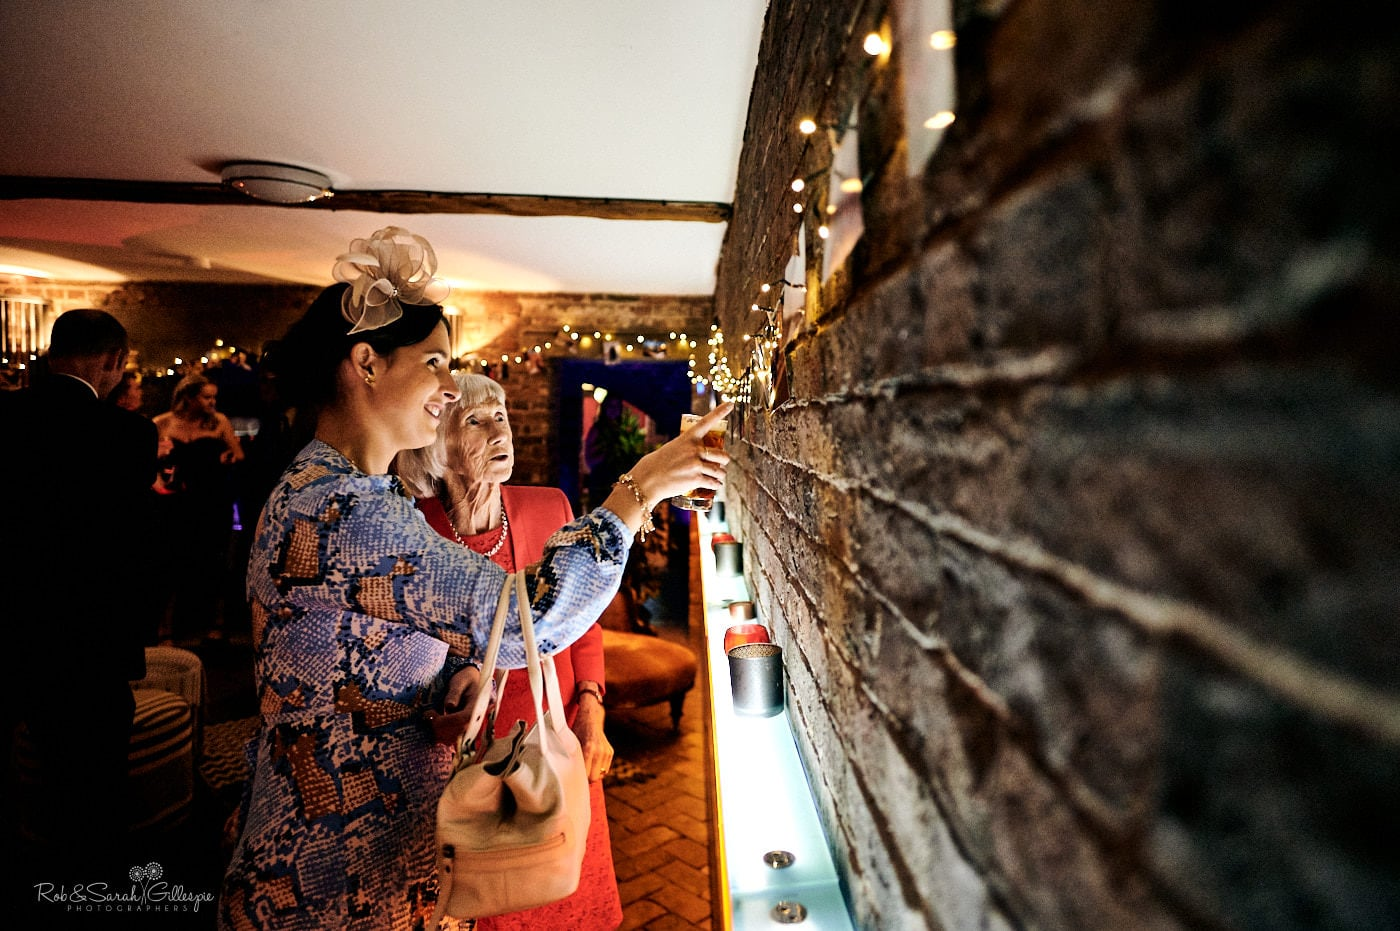 Wedding guests look at old photos at reception party